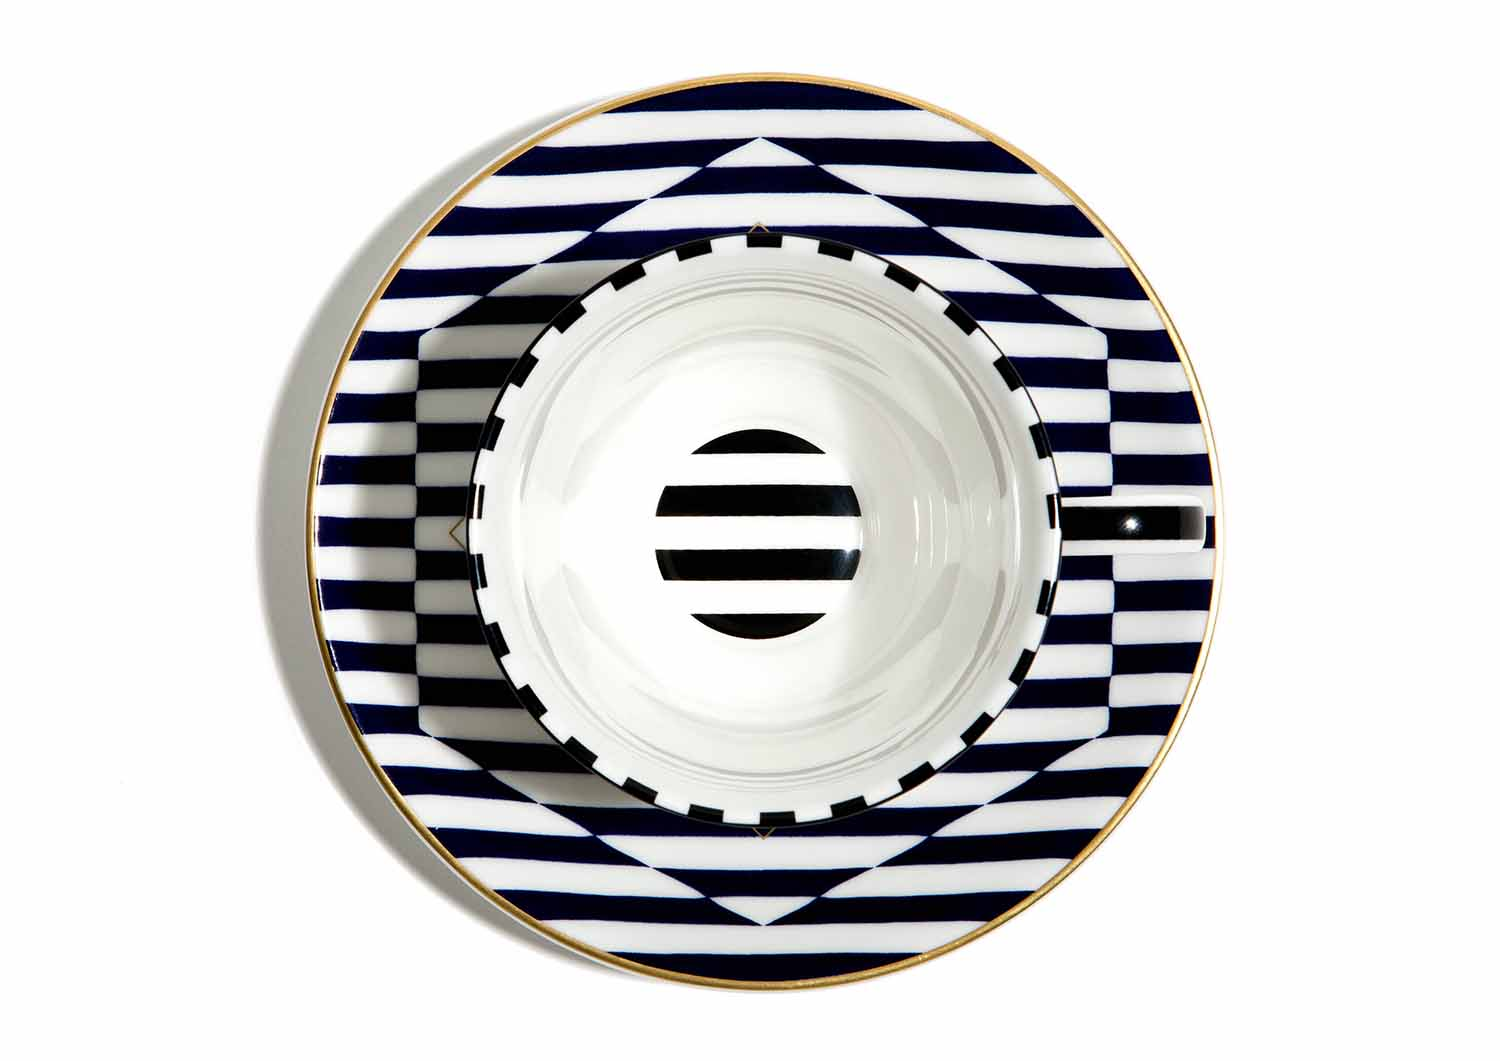 The Warp cup and saucer was designed in collaboration with London designer/entrepreneur Richard Brendon.